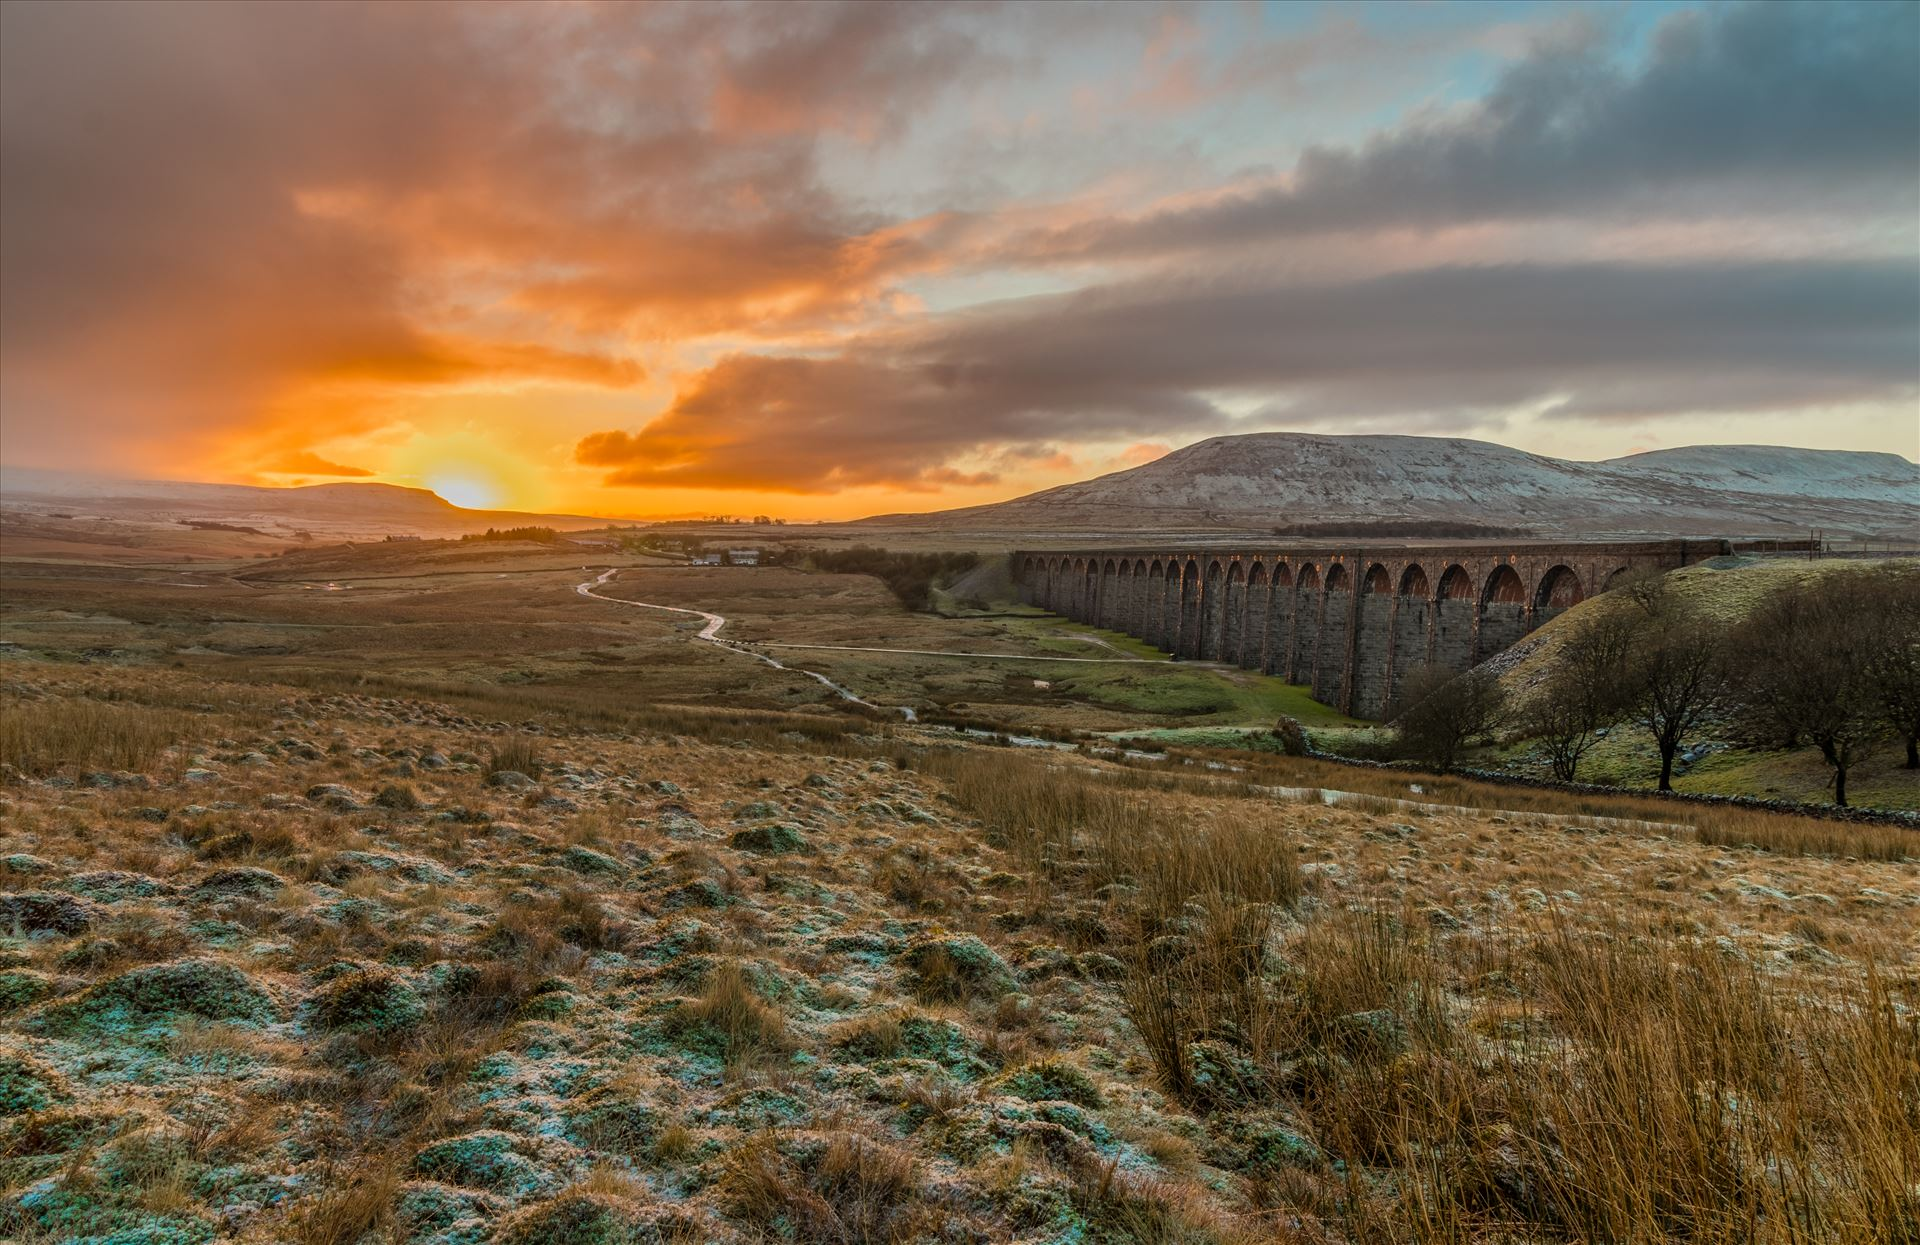 Sunrise and Sunset in the Yorkshire Dales